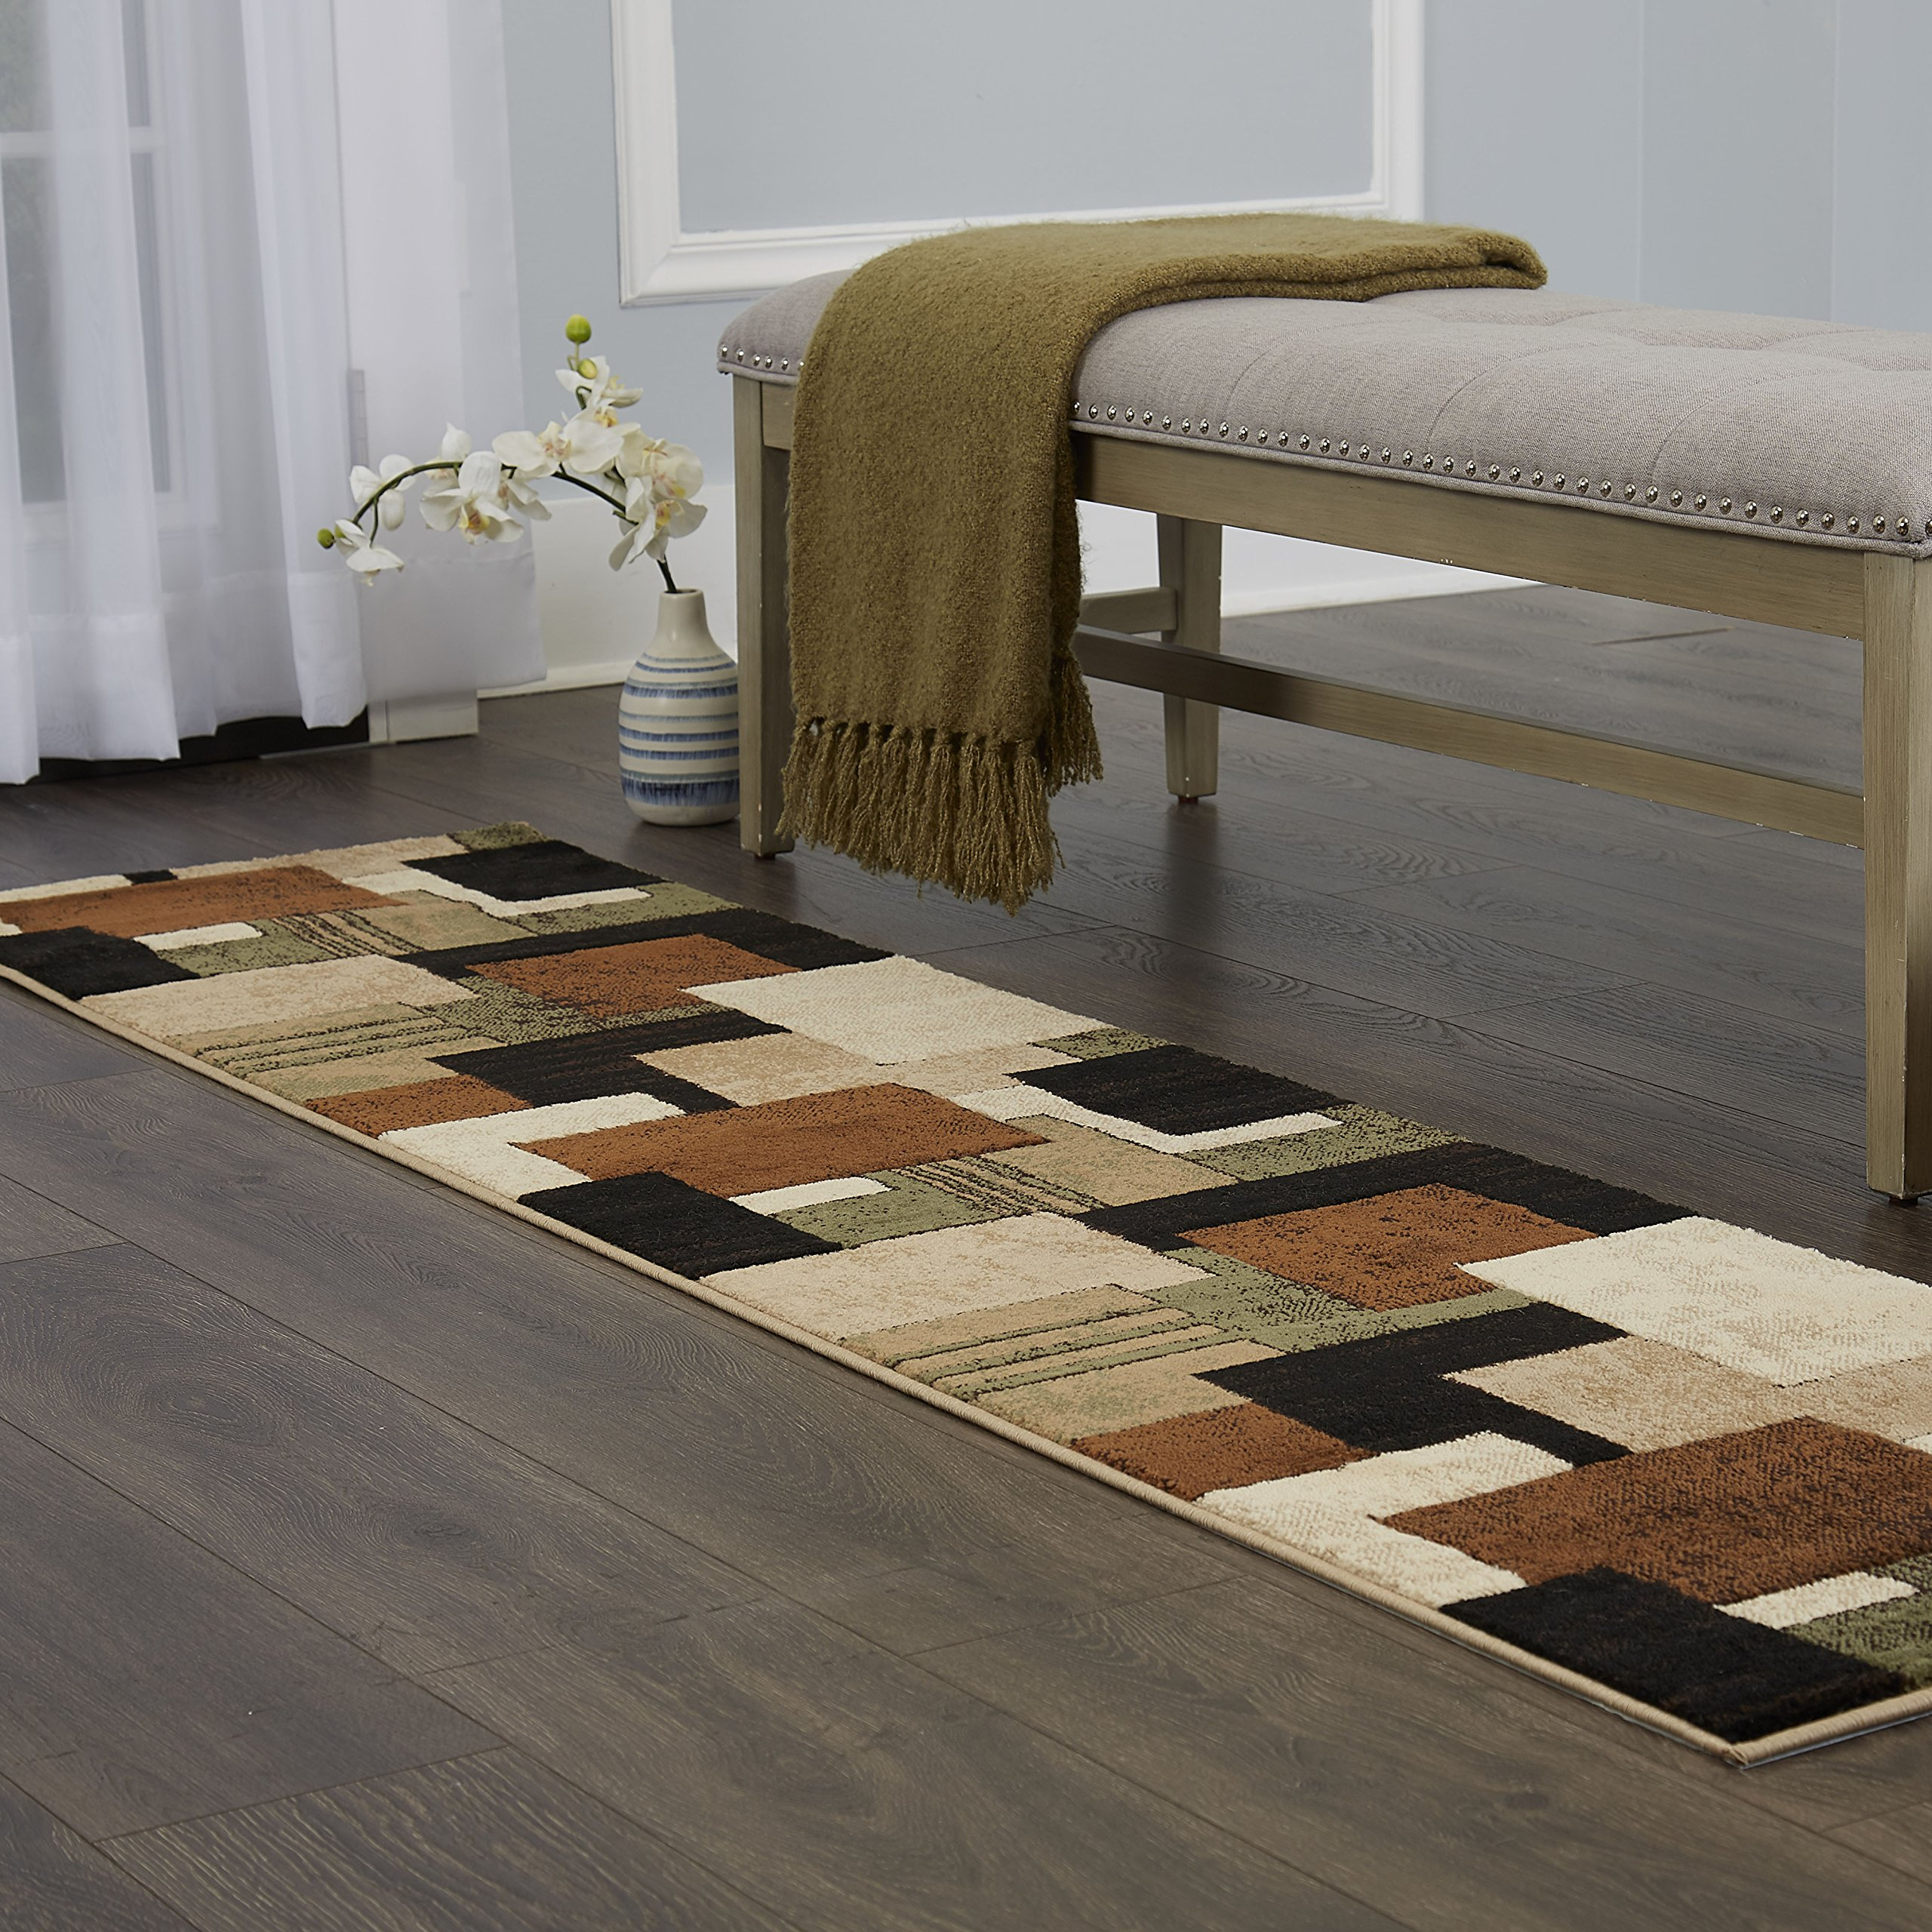 Home Dynamix Tribeca Mason Runner Area Rug 26'' x6', Abstract Brown/Green by Home Dynamix